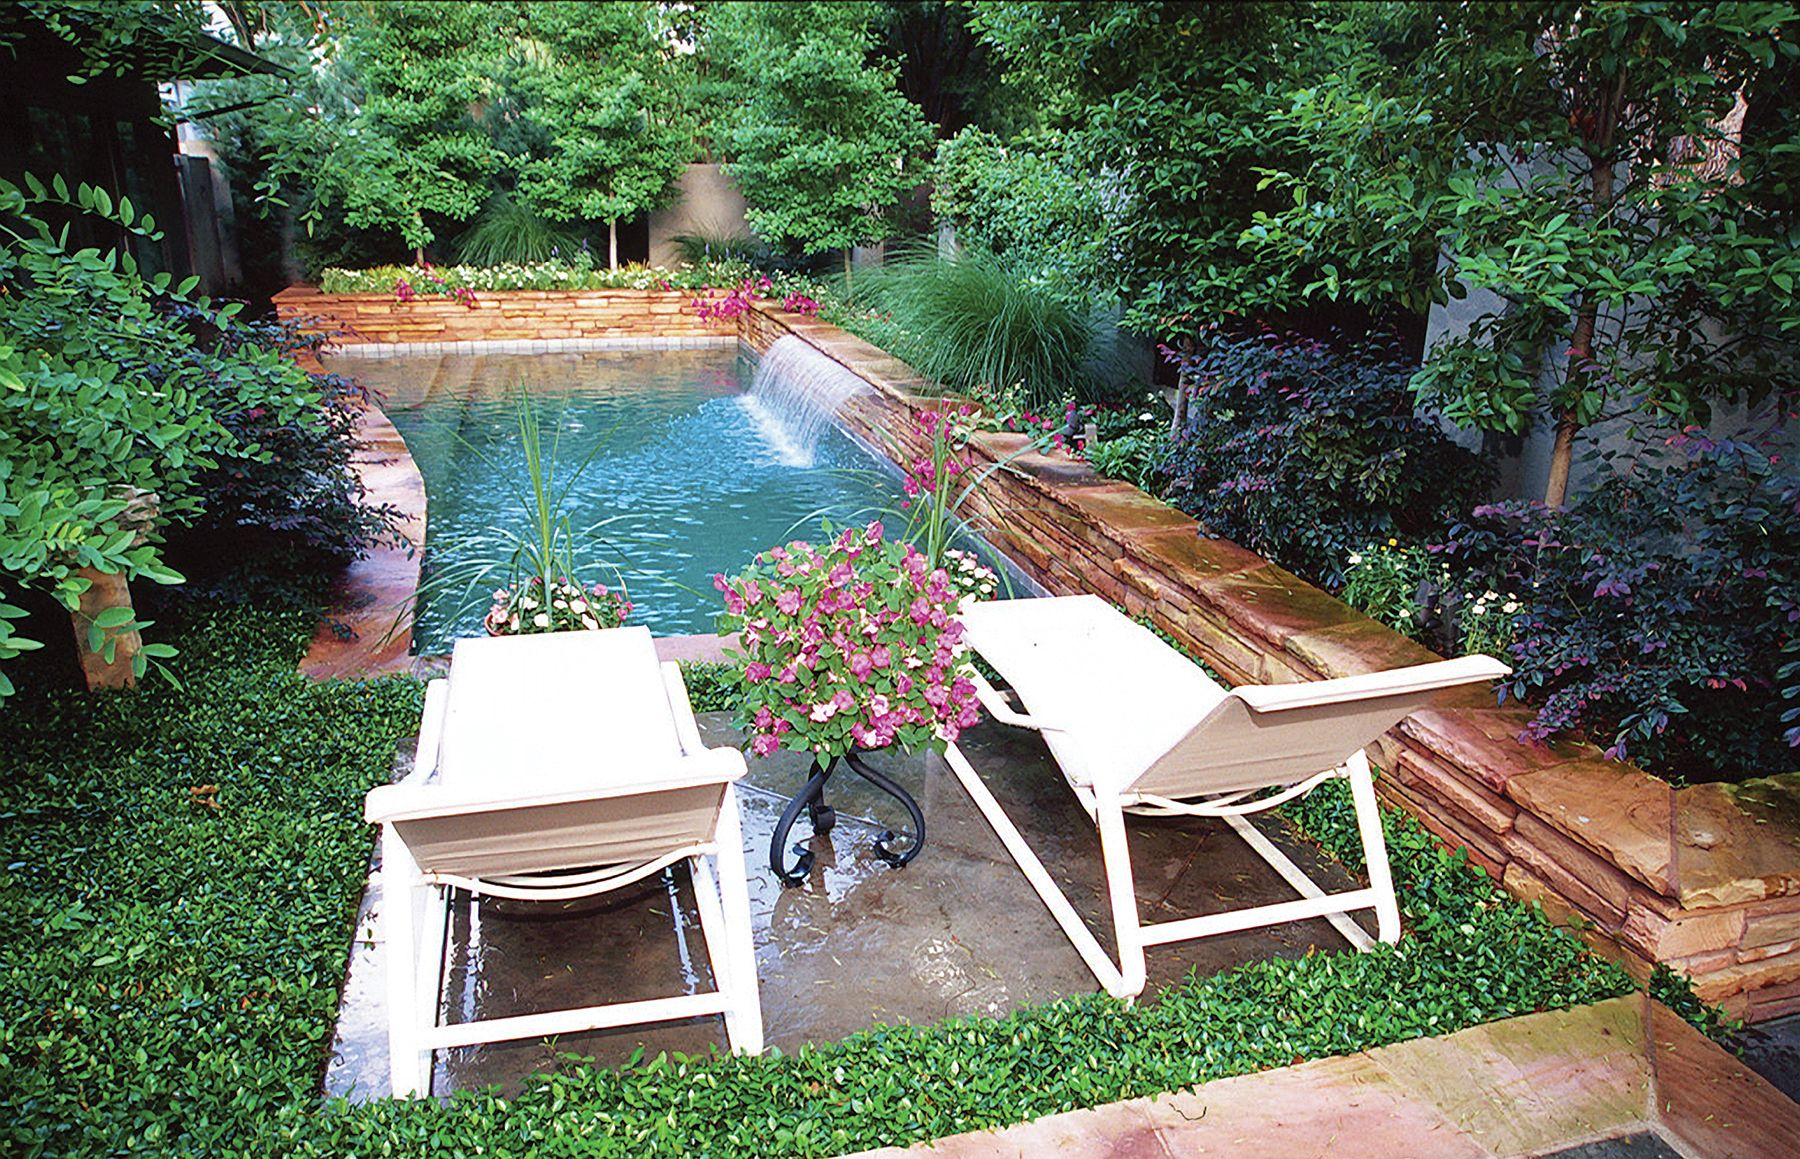 17+ images about pools on pinterest | small yards, swimming pool